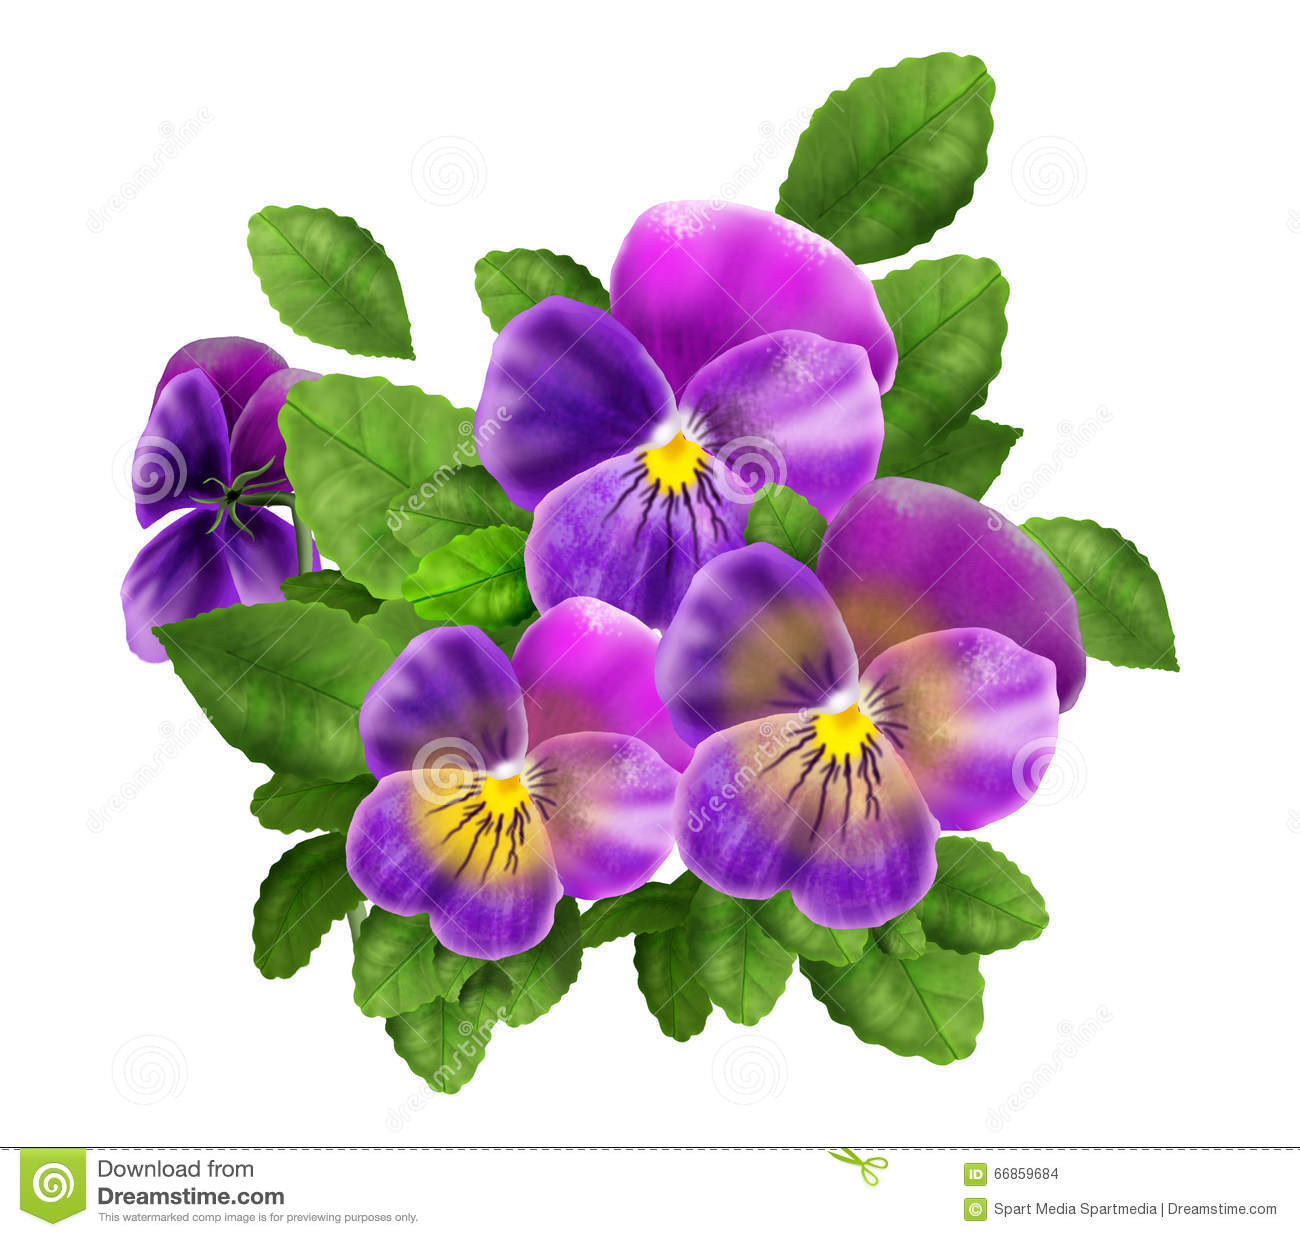 Pansy Violet Flowers Isolated Watercolor Illustration Viola Tricolor Realistic Decoration Stock Photo Illustration Of Ease Closeup 66859684